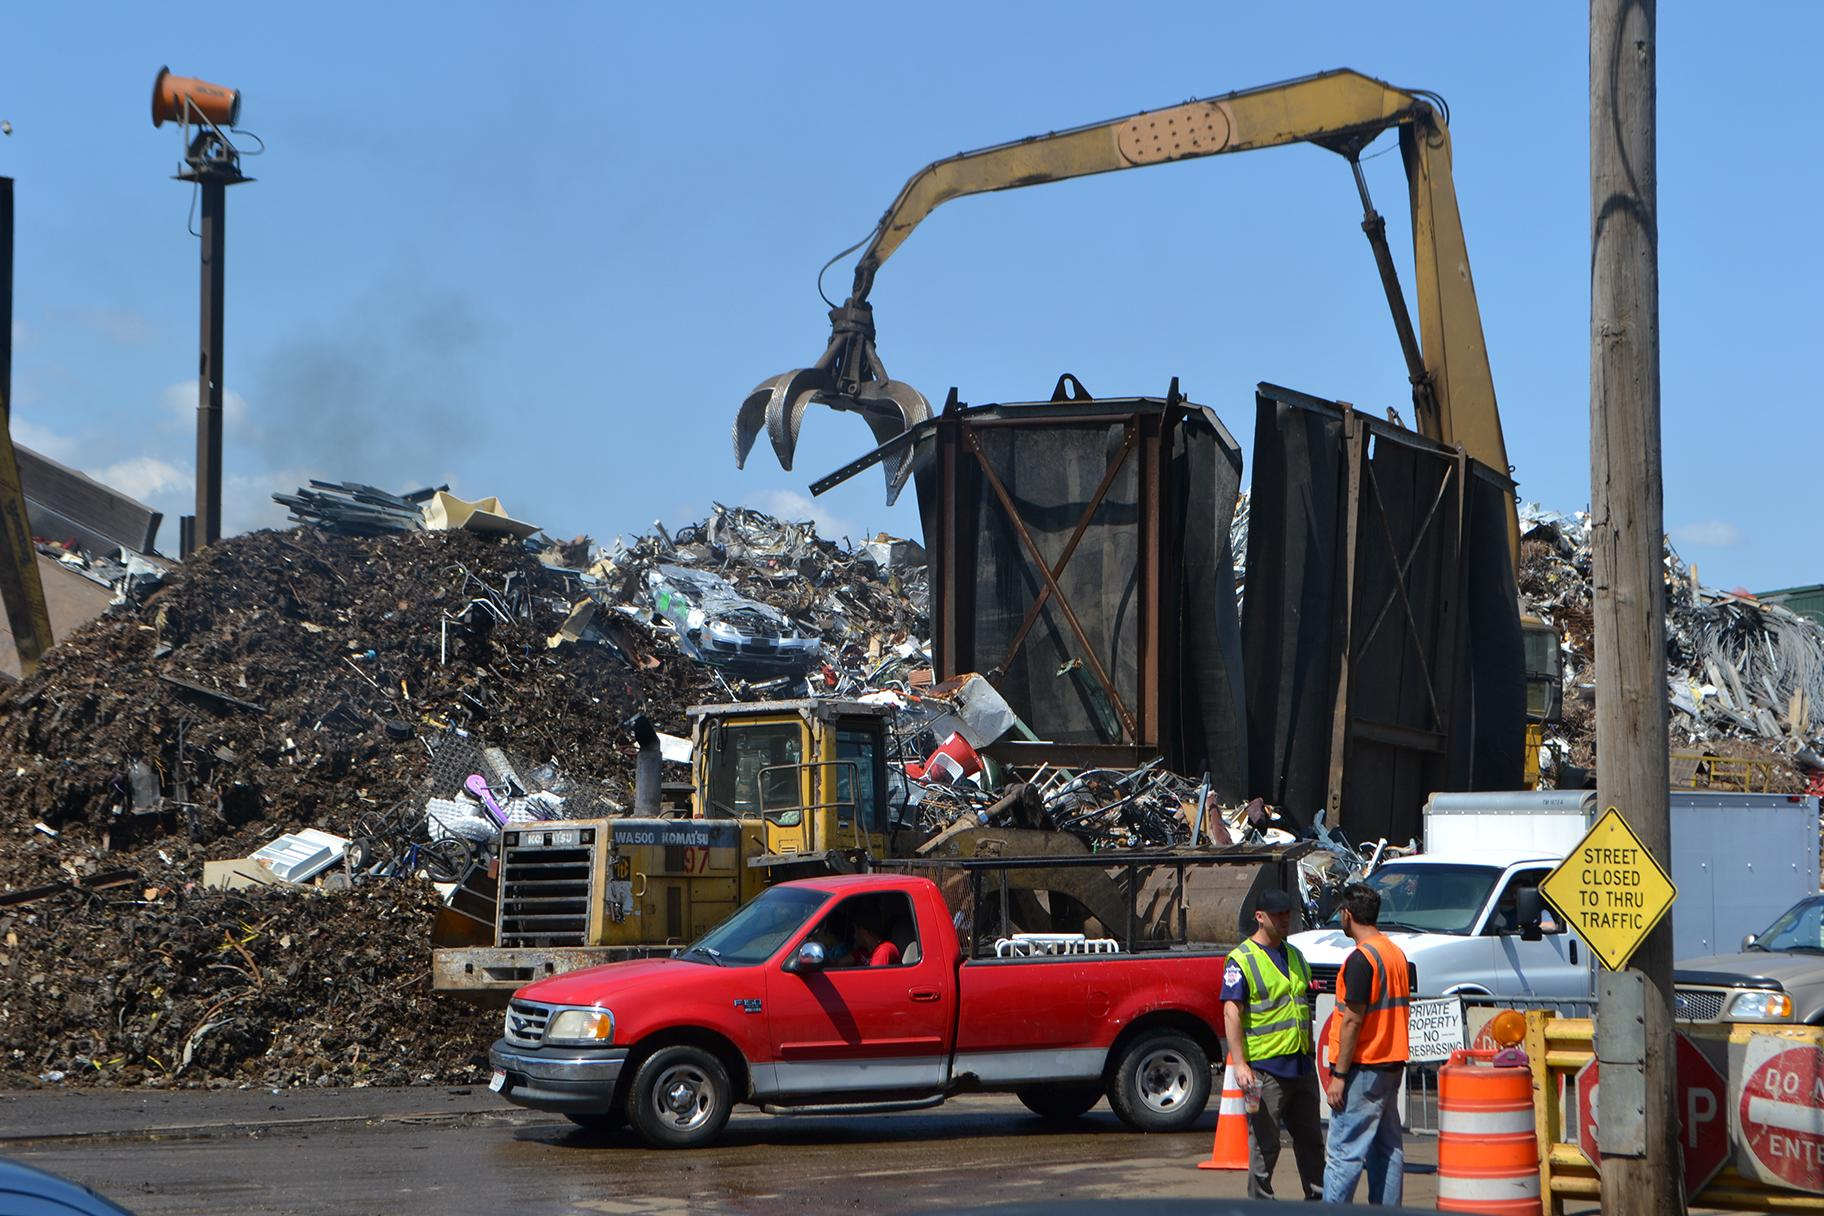 General Iron's scrap metal yard at 1909 N. Clifton Ave. in Lincoln Park. (Alex Ruppenthal / WTTW News)